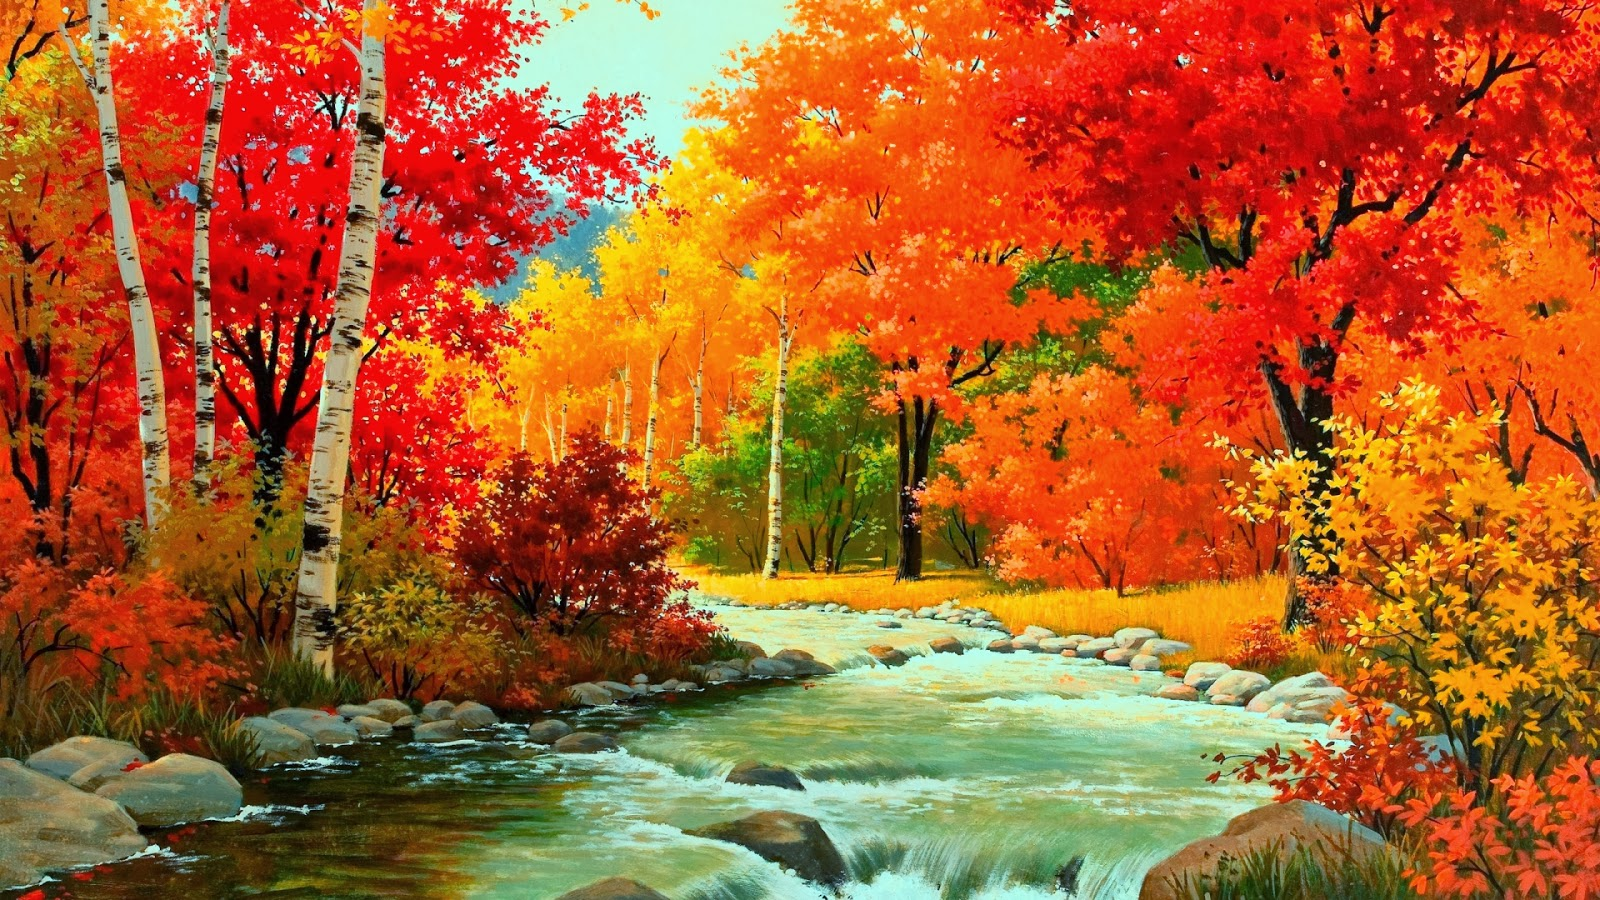 wallpaper desk autumn river wallpaperwallpaper desk